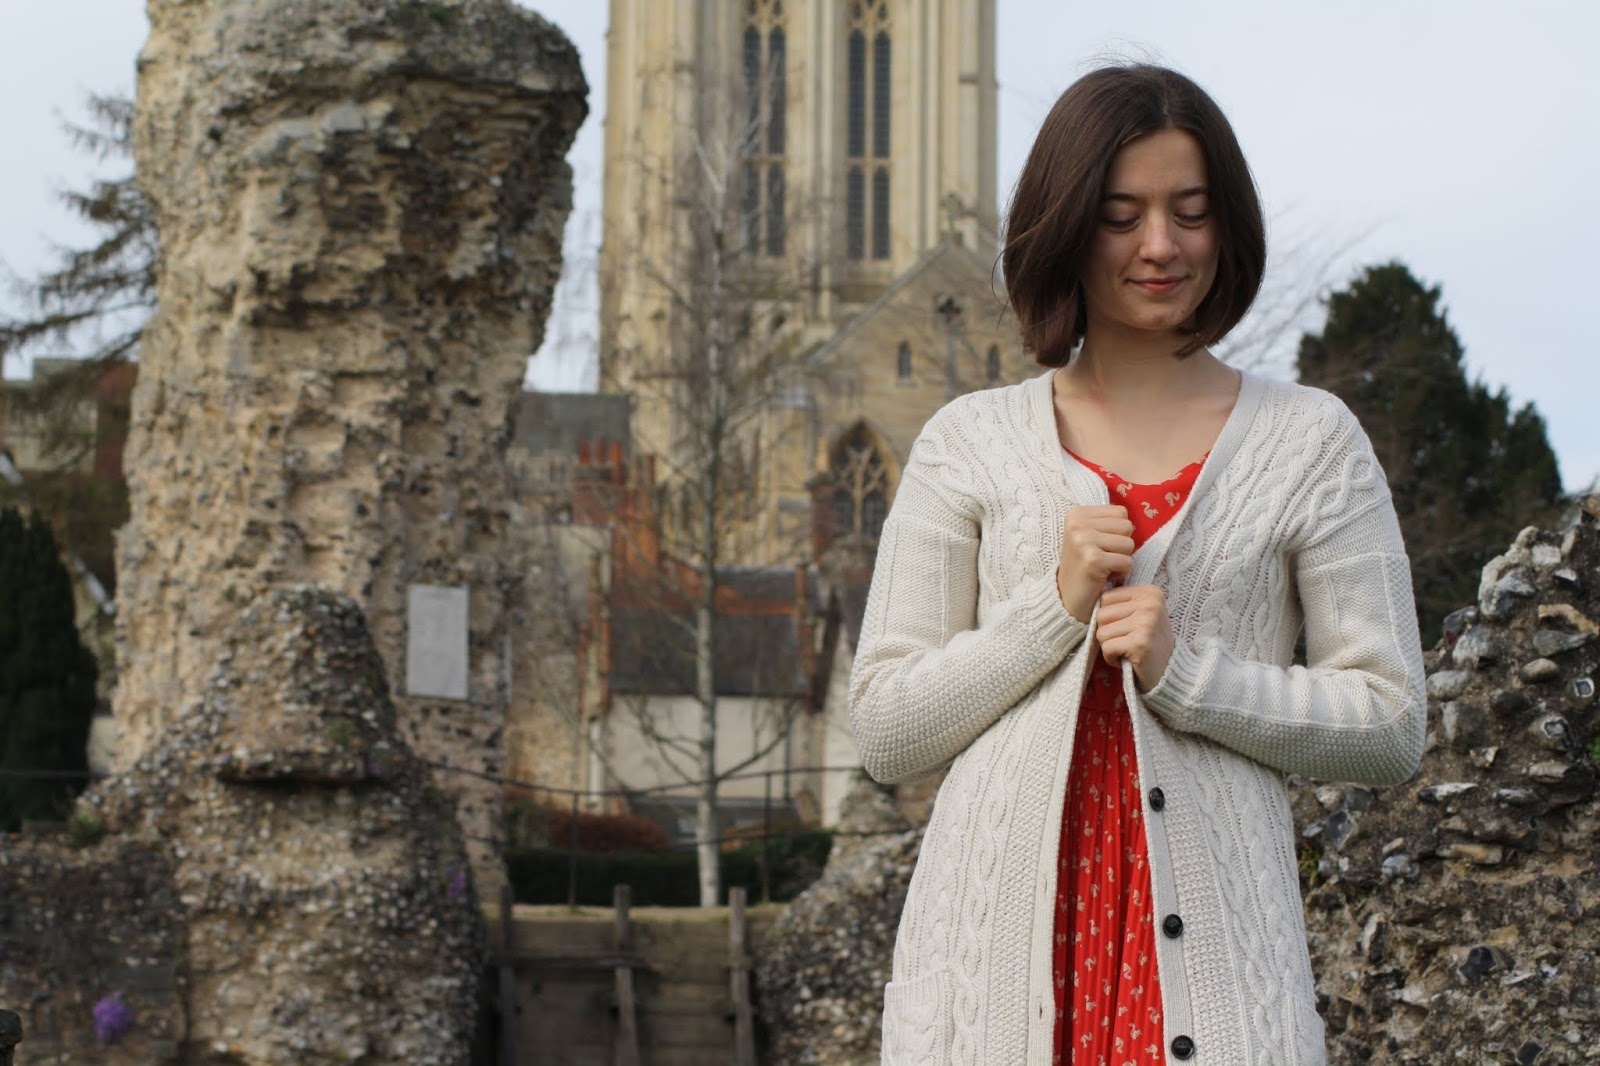 Abbey, wearing a red dress and knit cardi, stands in front of the ruins of Bury St Edmunds Abbey with the cathedral in the background